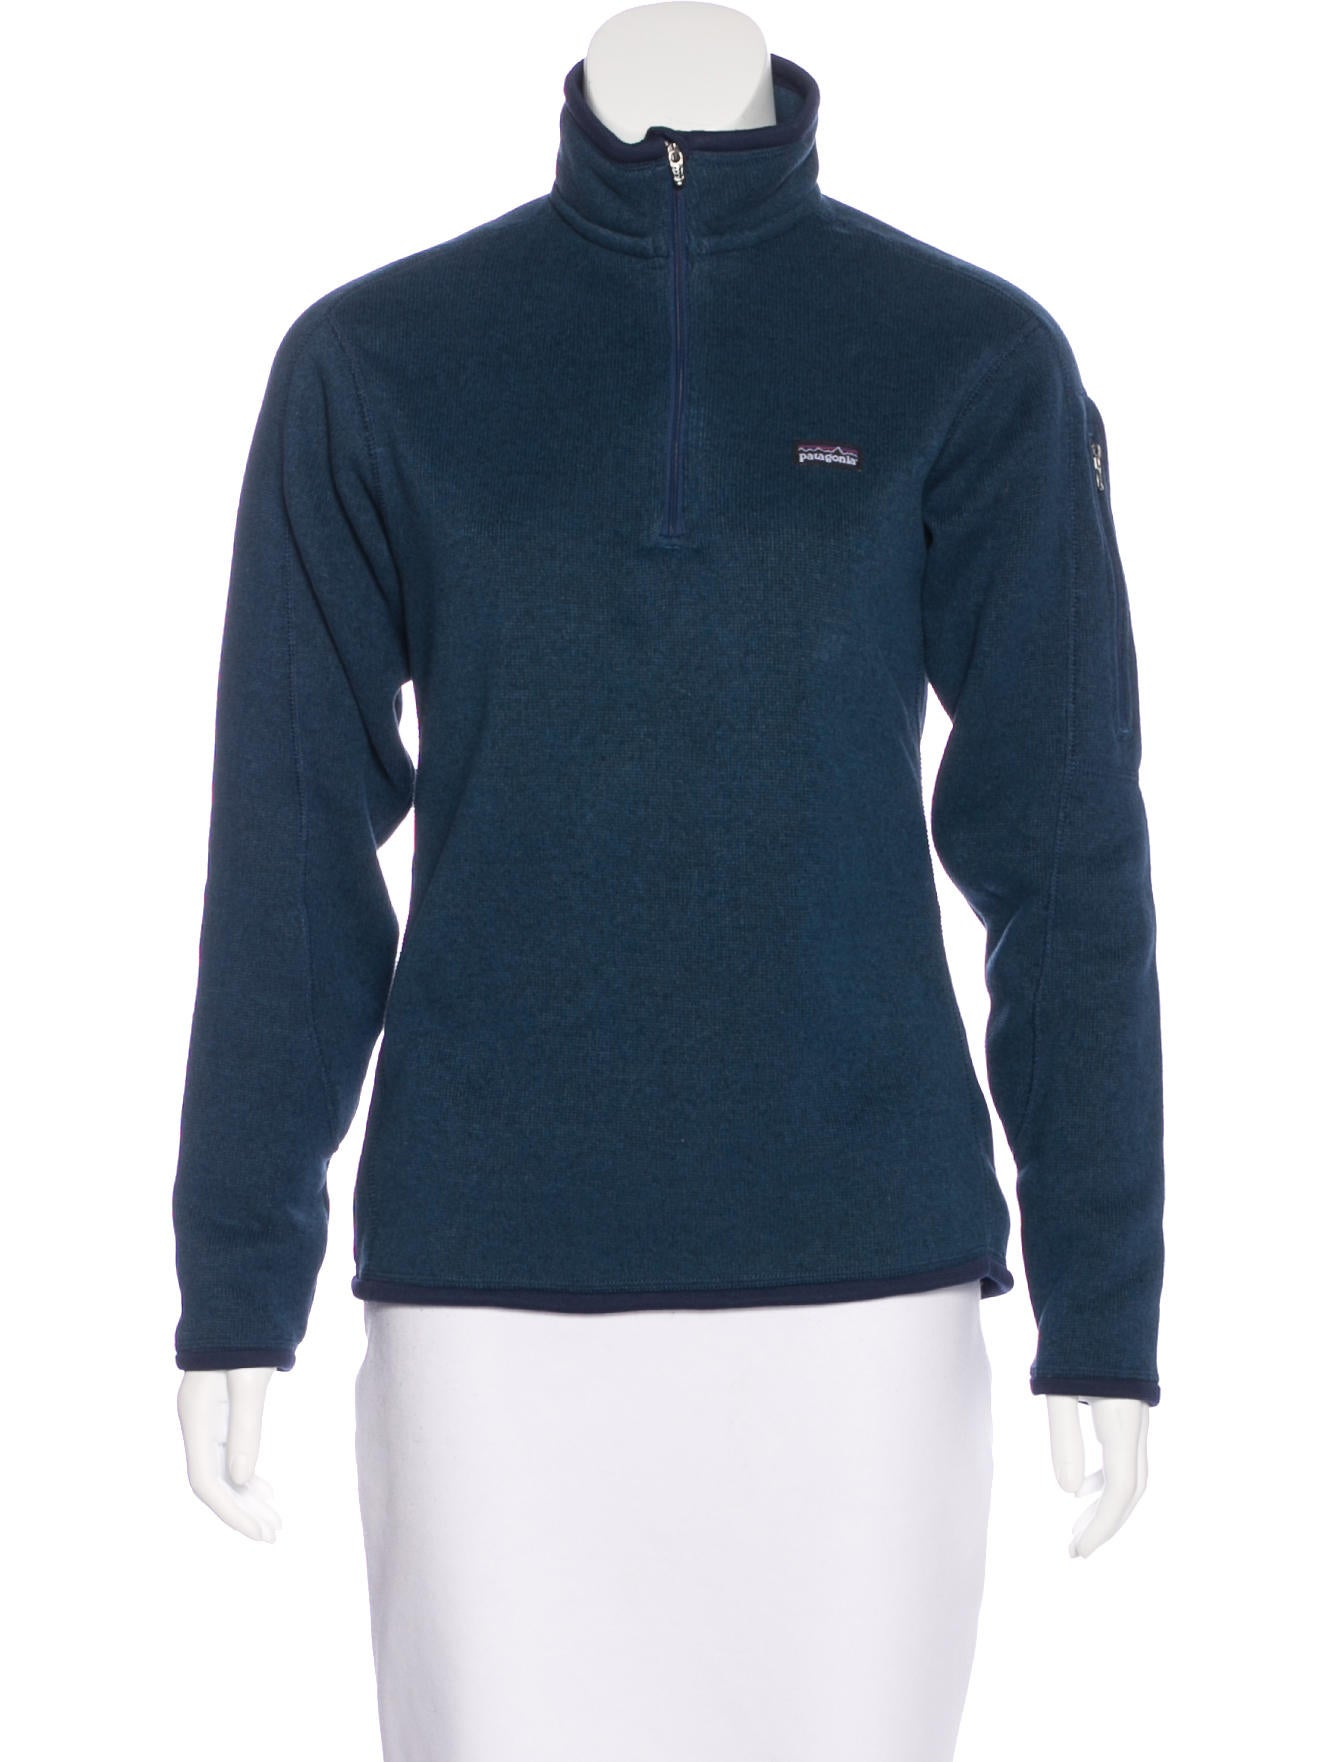 Patagonia stand collar zip up sweatshirt clothing for Stand collar shirt womens